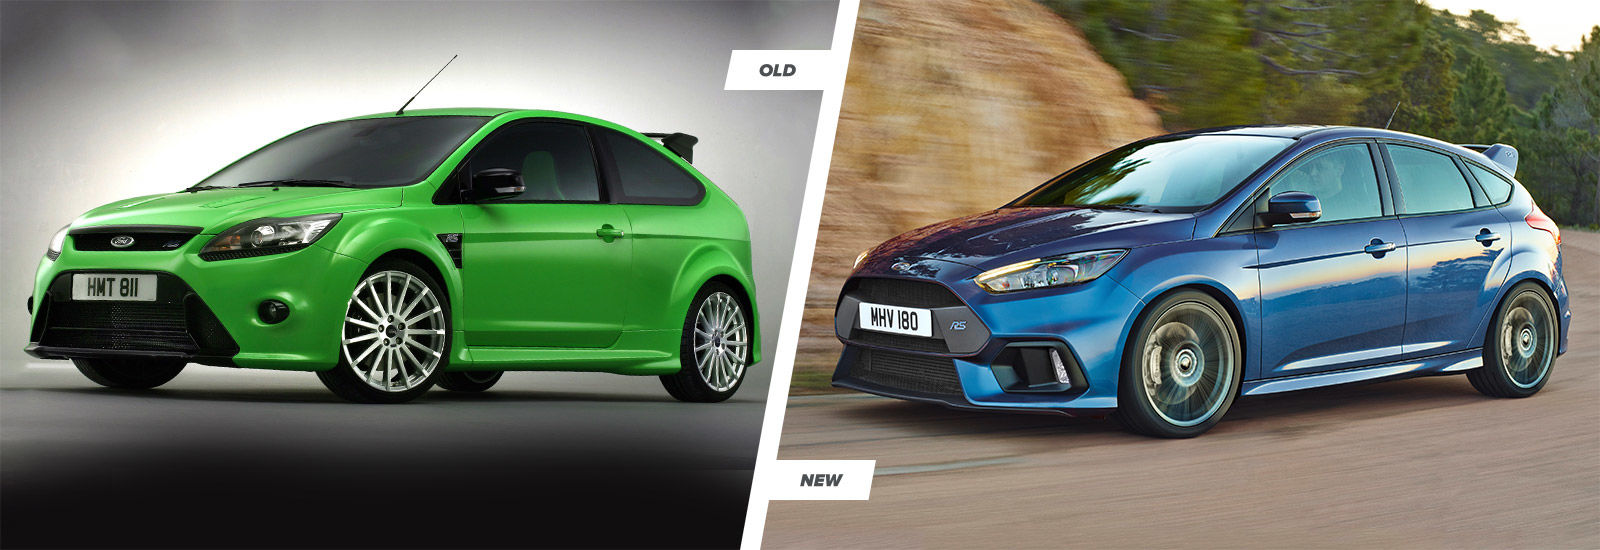 ford focus rs old vs new hot hatches compared carwow. Black Bedroom Furniture Sets. Home Design Ideas